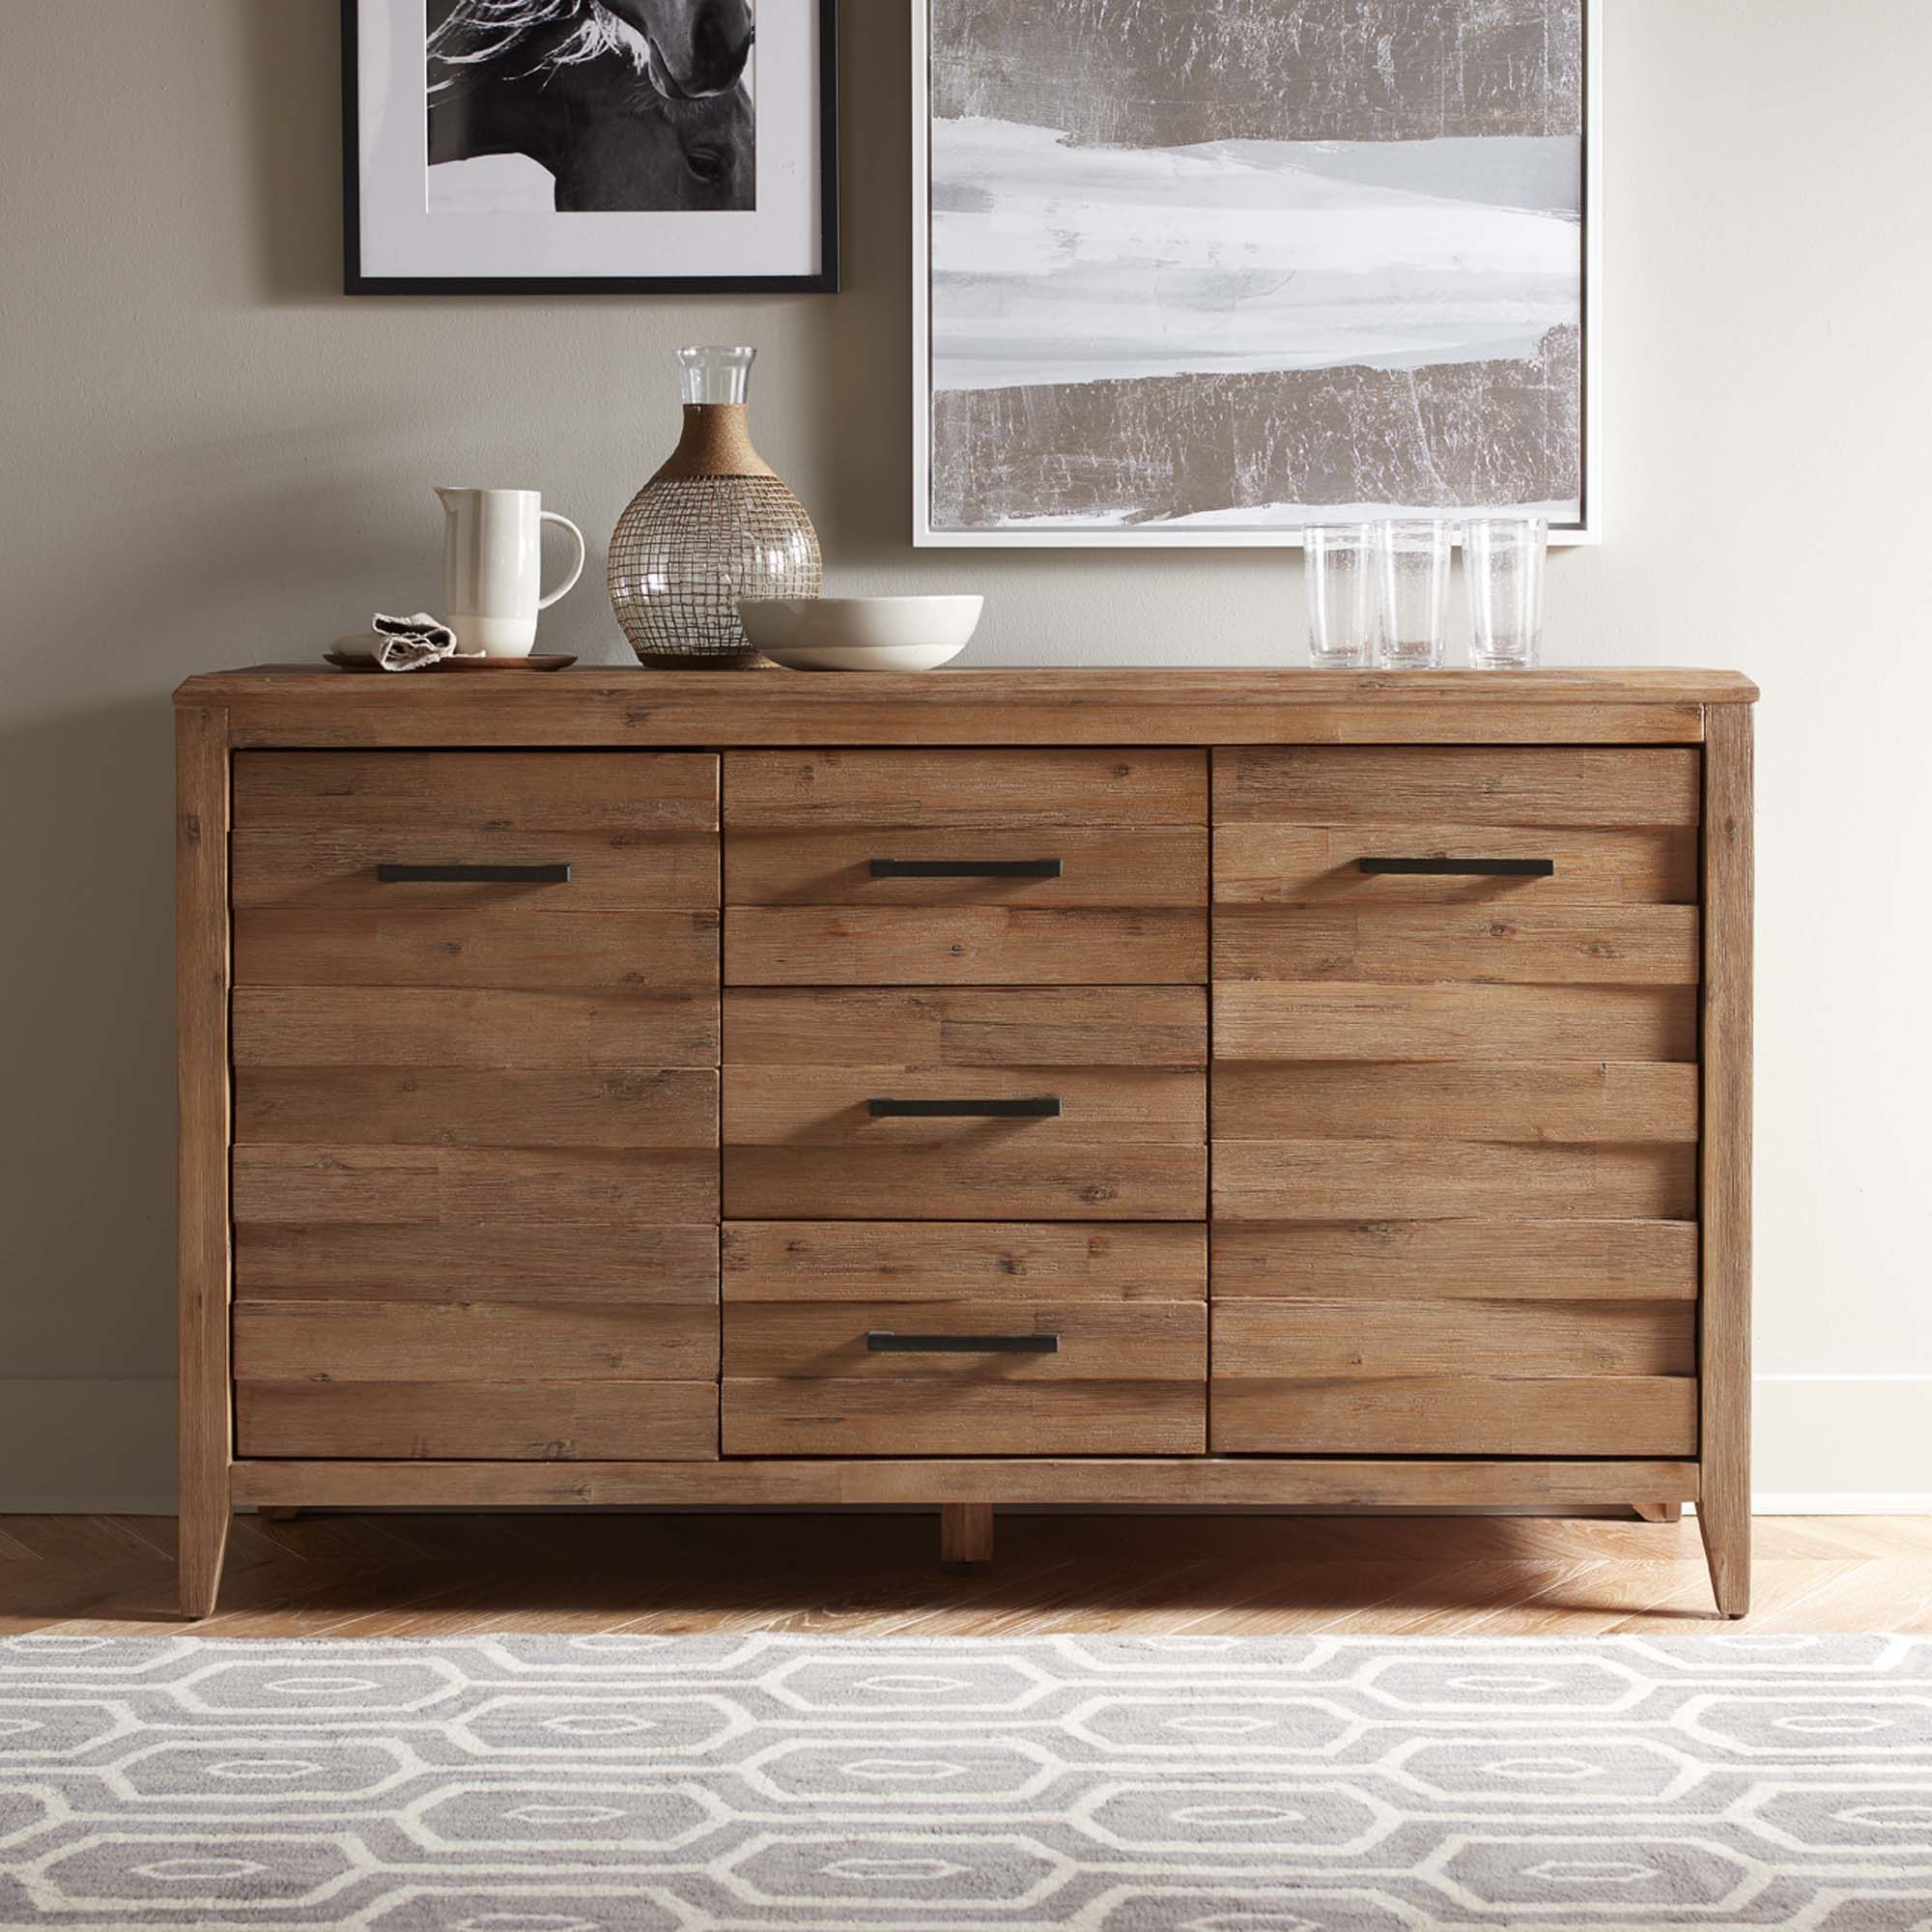 This Handsomely Built Acacia Wood Sideboard Features Rustic Throughout Saint Gratien Sideboards (View 8 of 20)